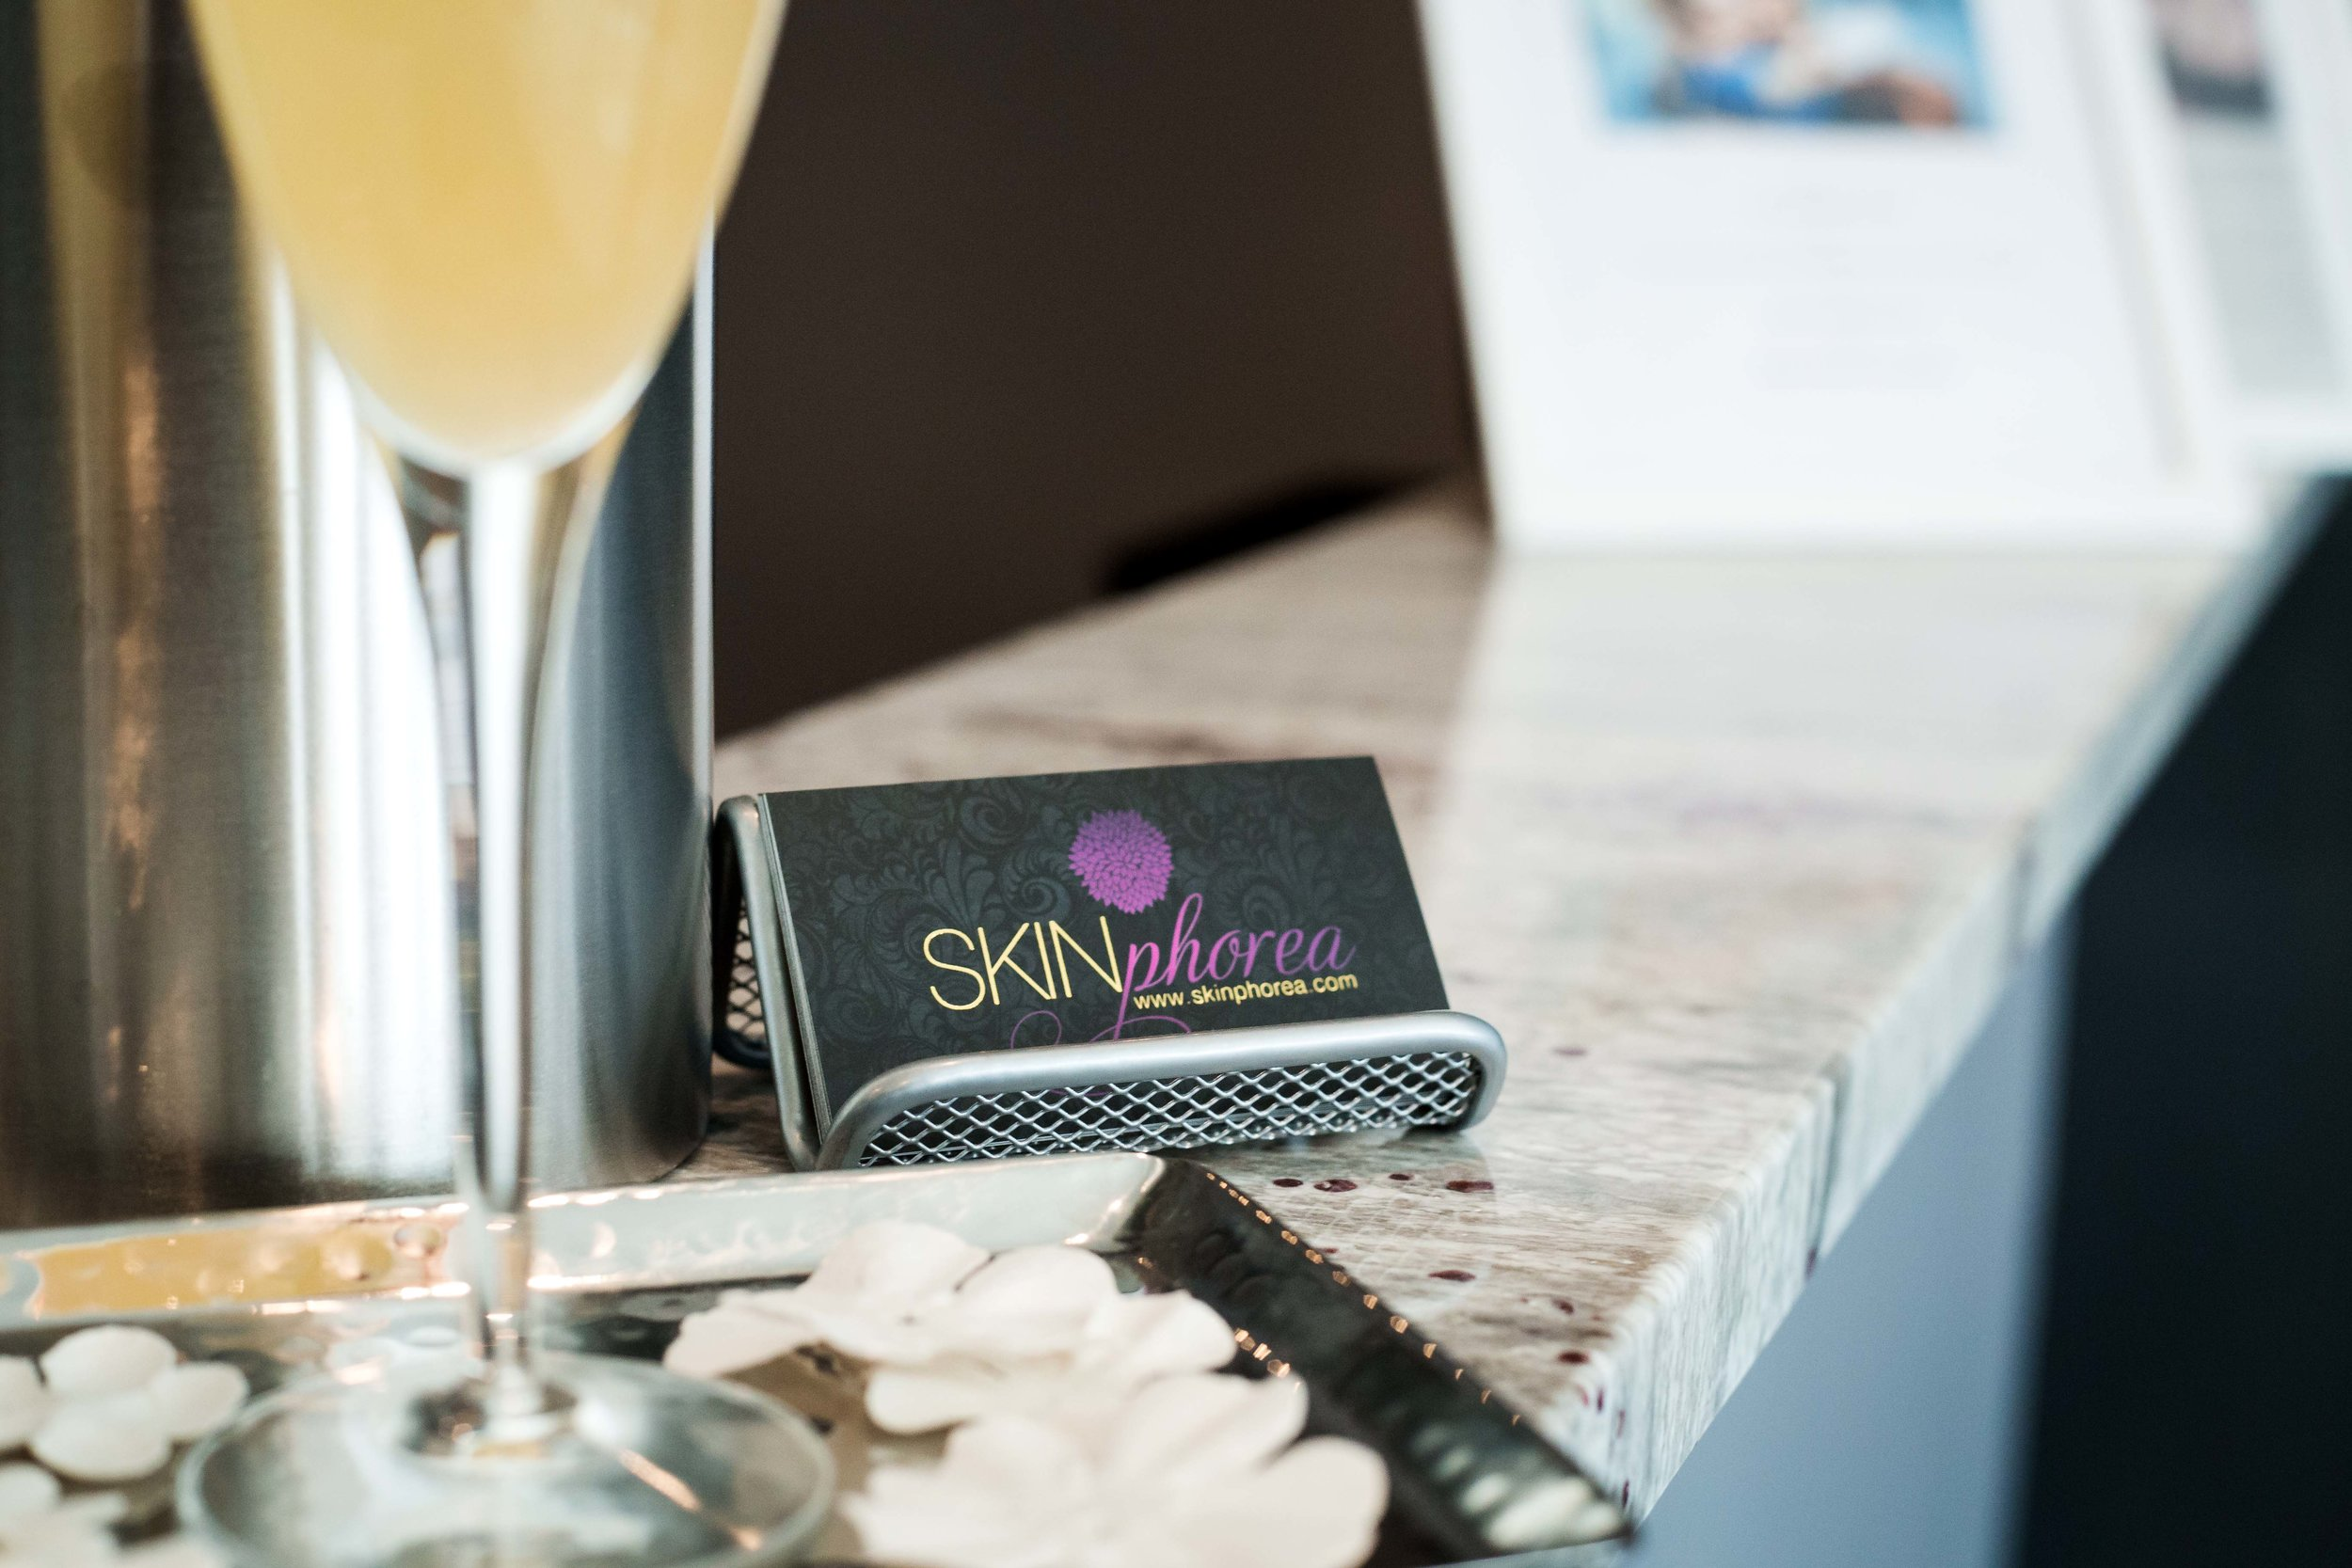 Skinphorea - Royal Oak - Michigan - Business Branding Photography - Moon Reflections Photography